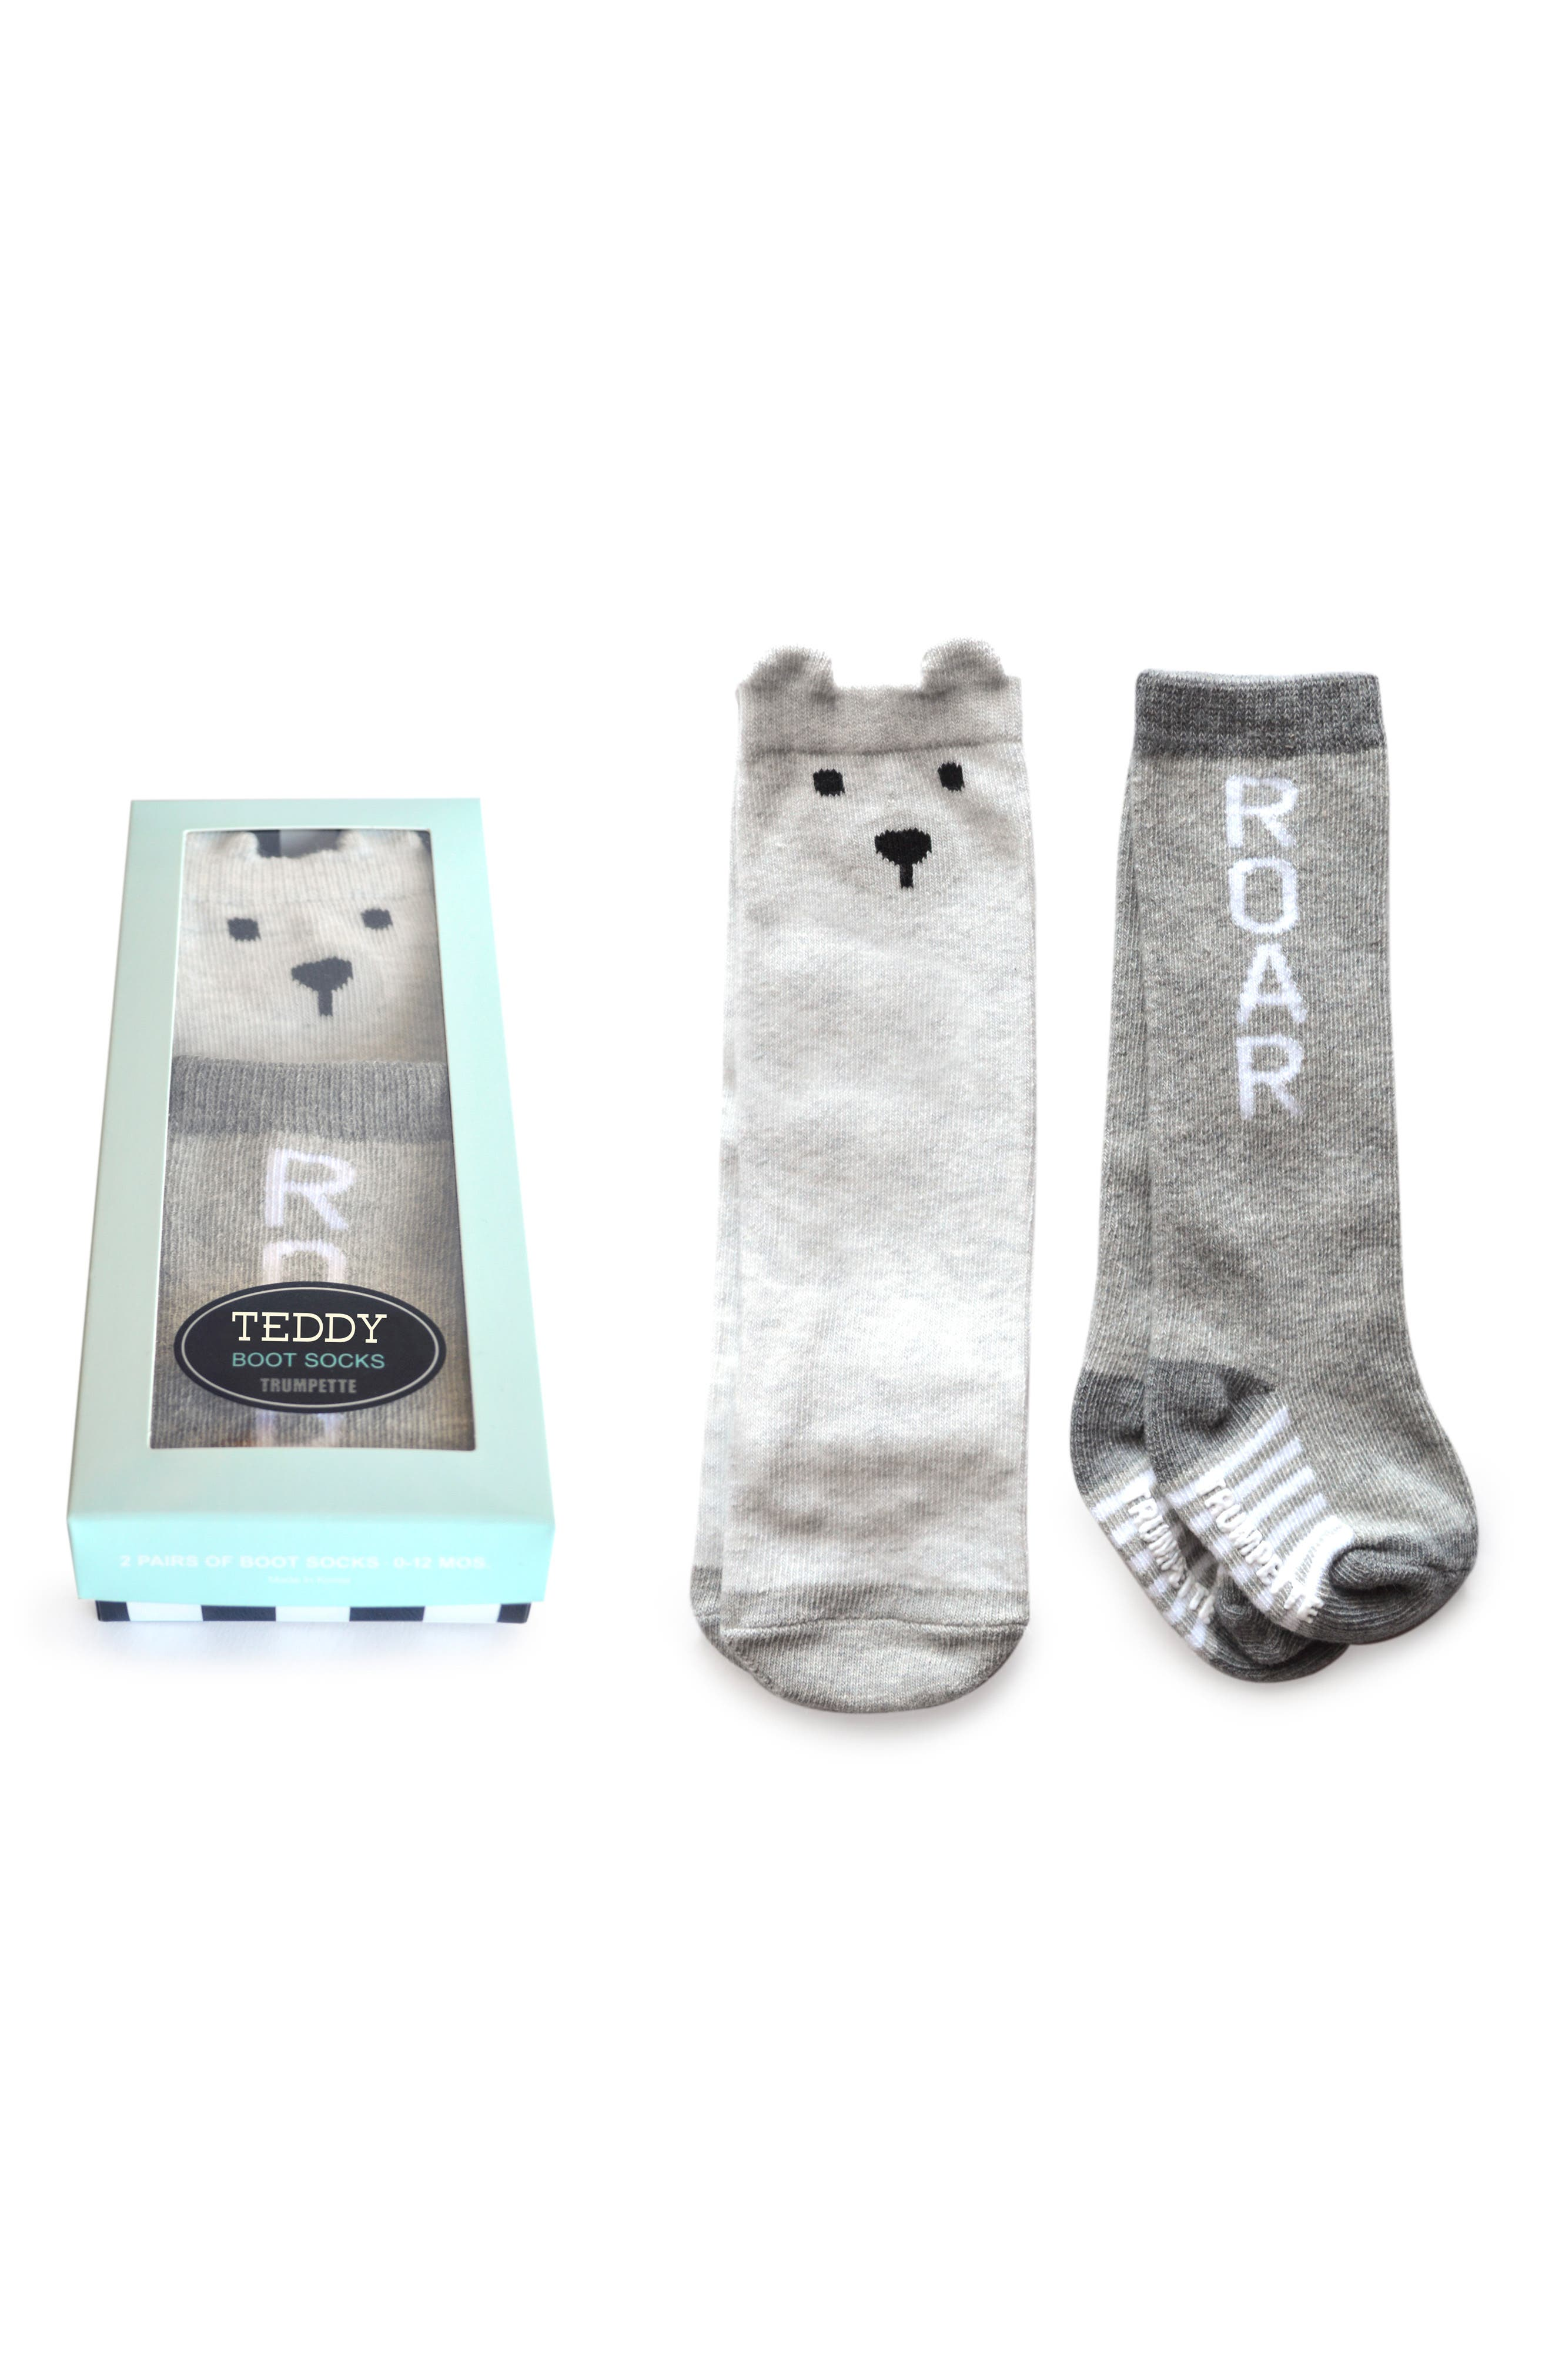 Teddy 2-Pack Boot Socks,                         Main,                         color, 021